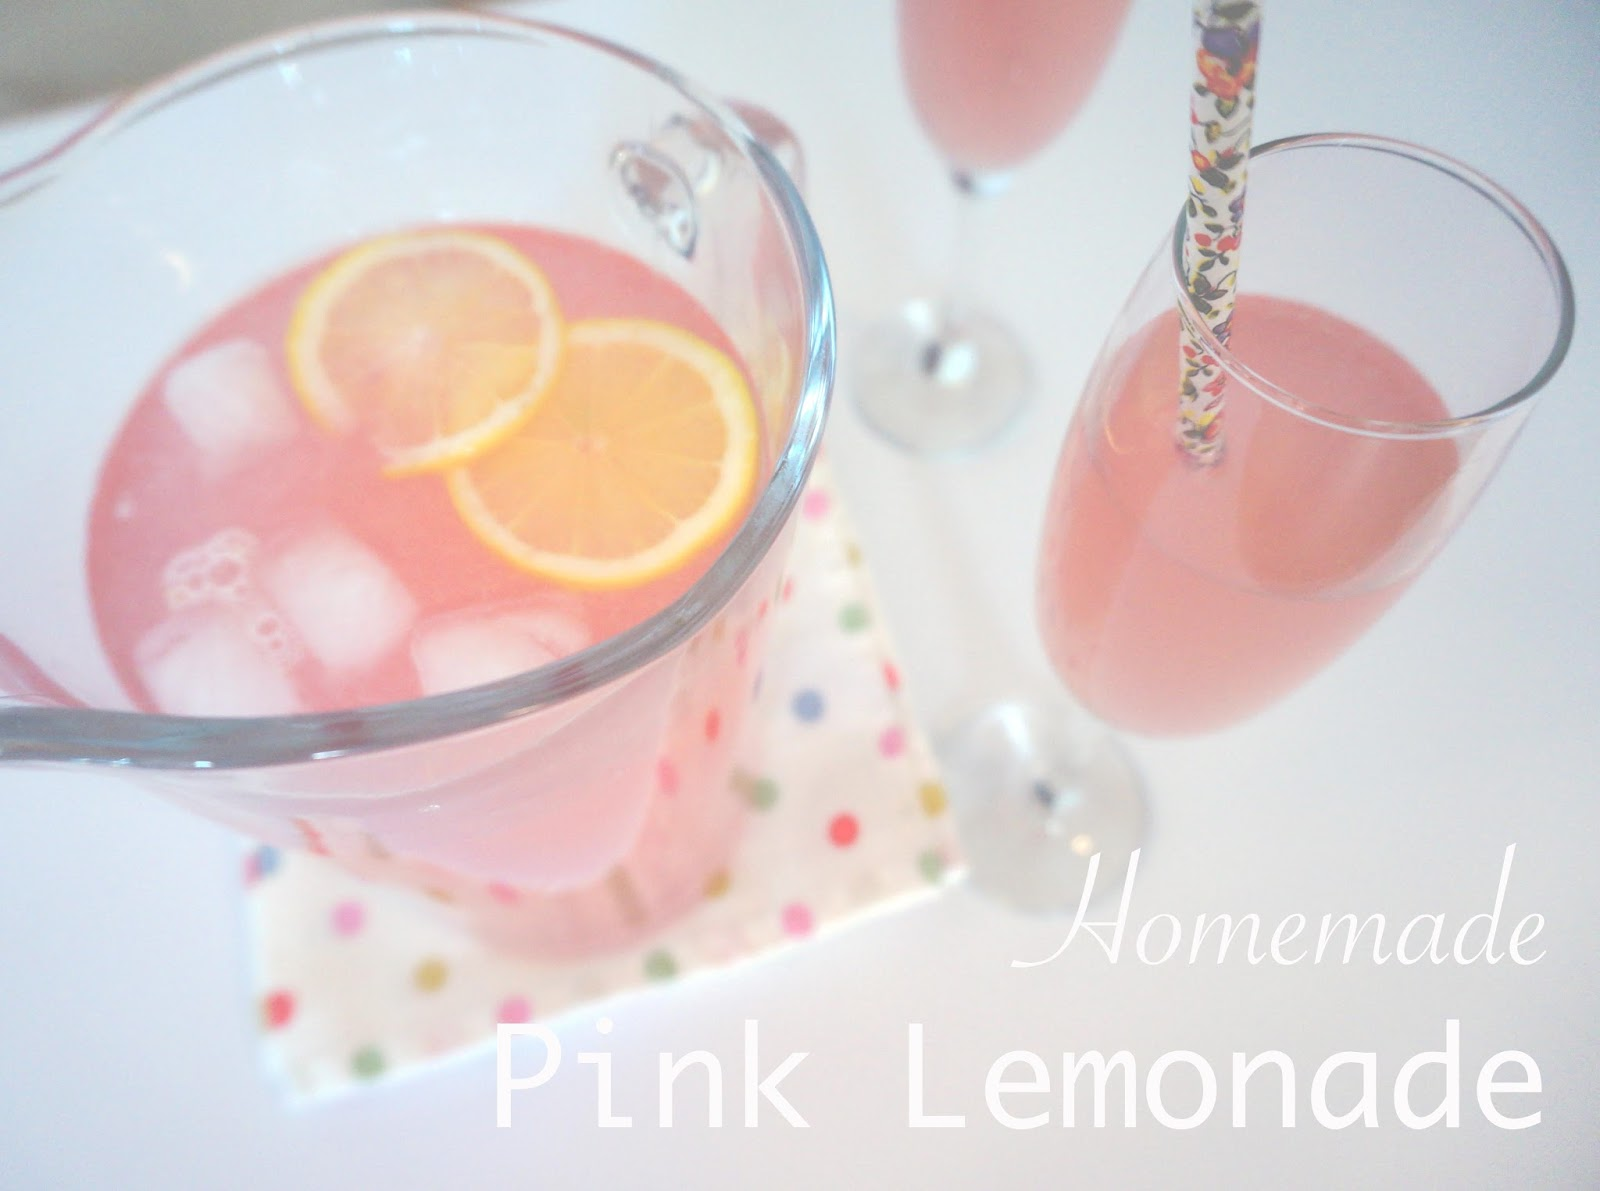 meg-made: Homemade Pink Lemonade recipe